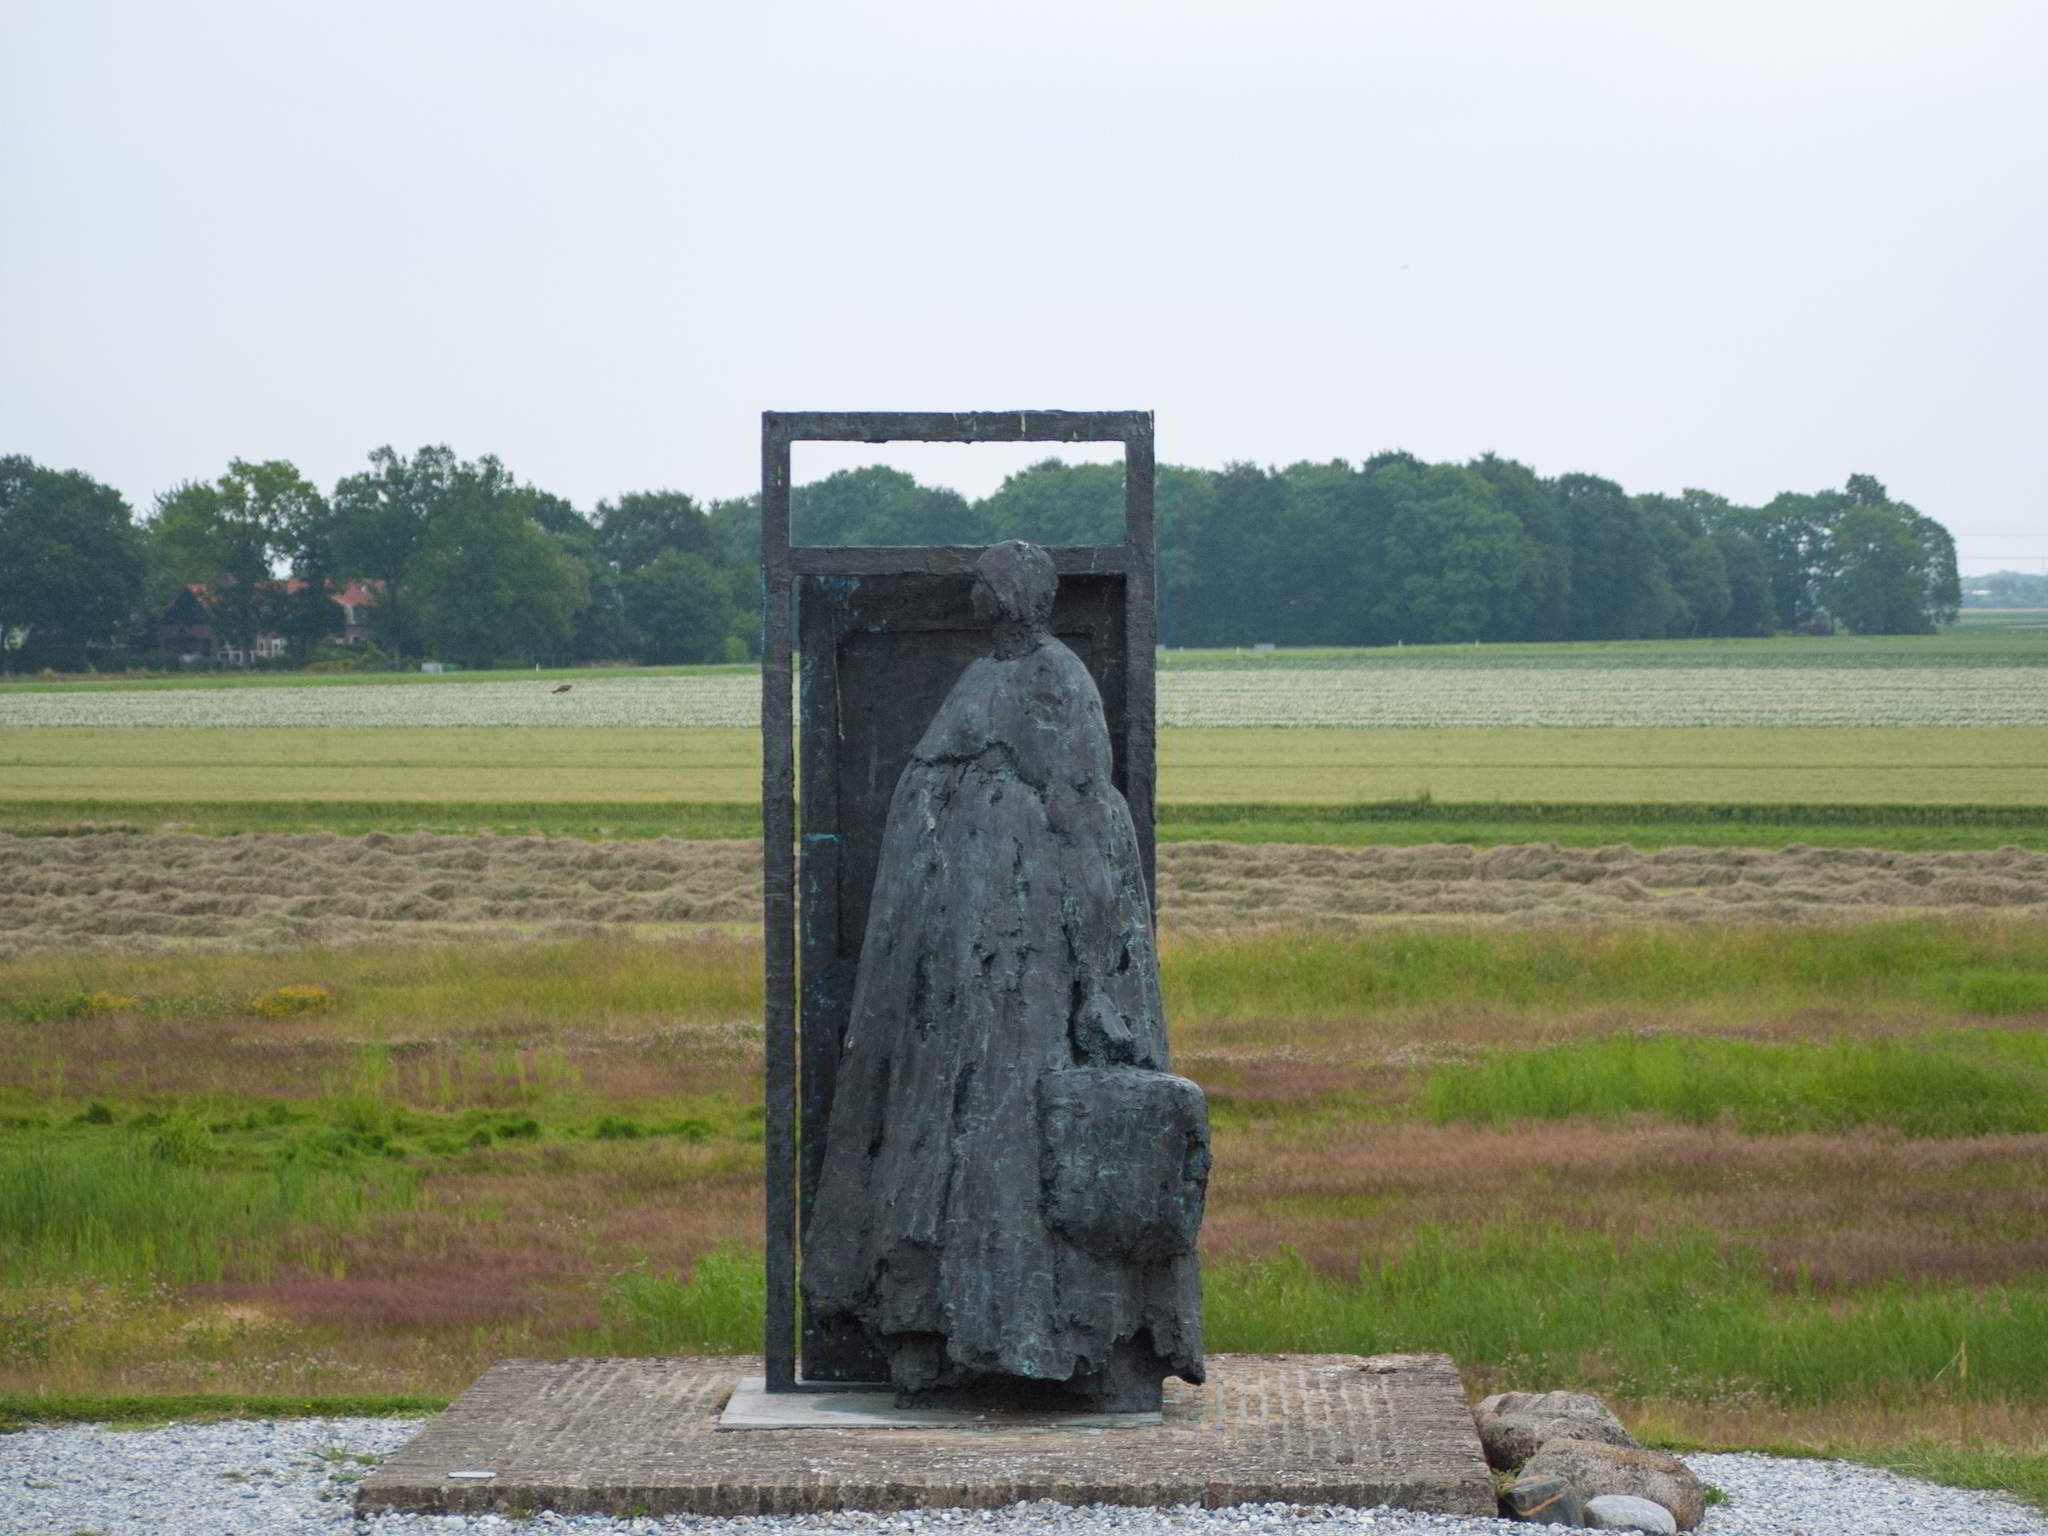 """Geen weg terug"" [No way back], image inspired on the evacuation of Schokland; Kiny Copinga, 2004."